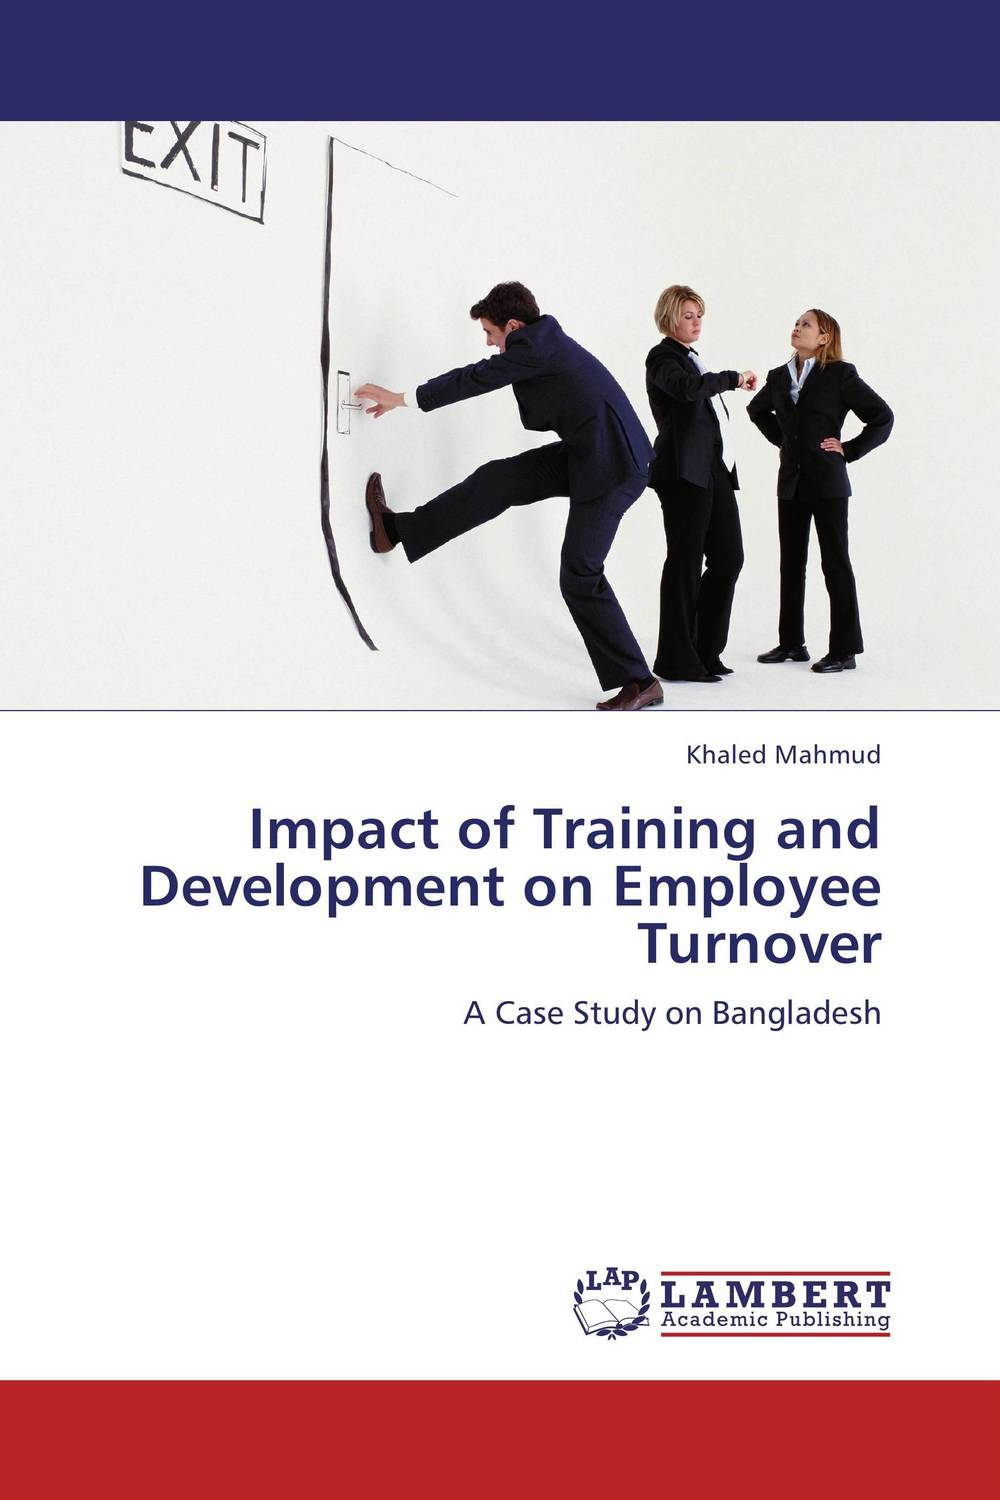 Impact of Training and Development on Employee Turnover wooden balance board skid counterweight balance training and the training of difficult personal and educational supplies